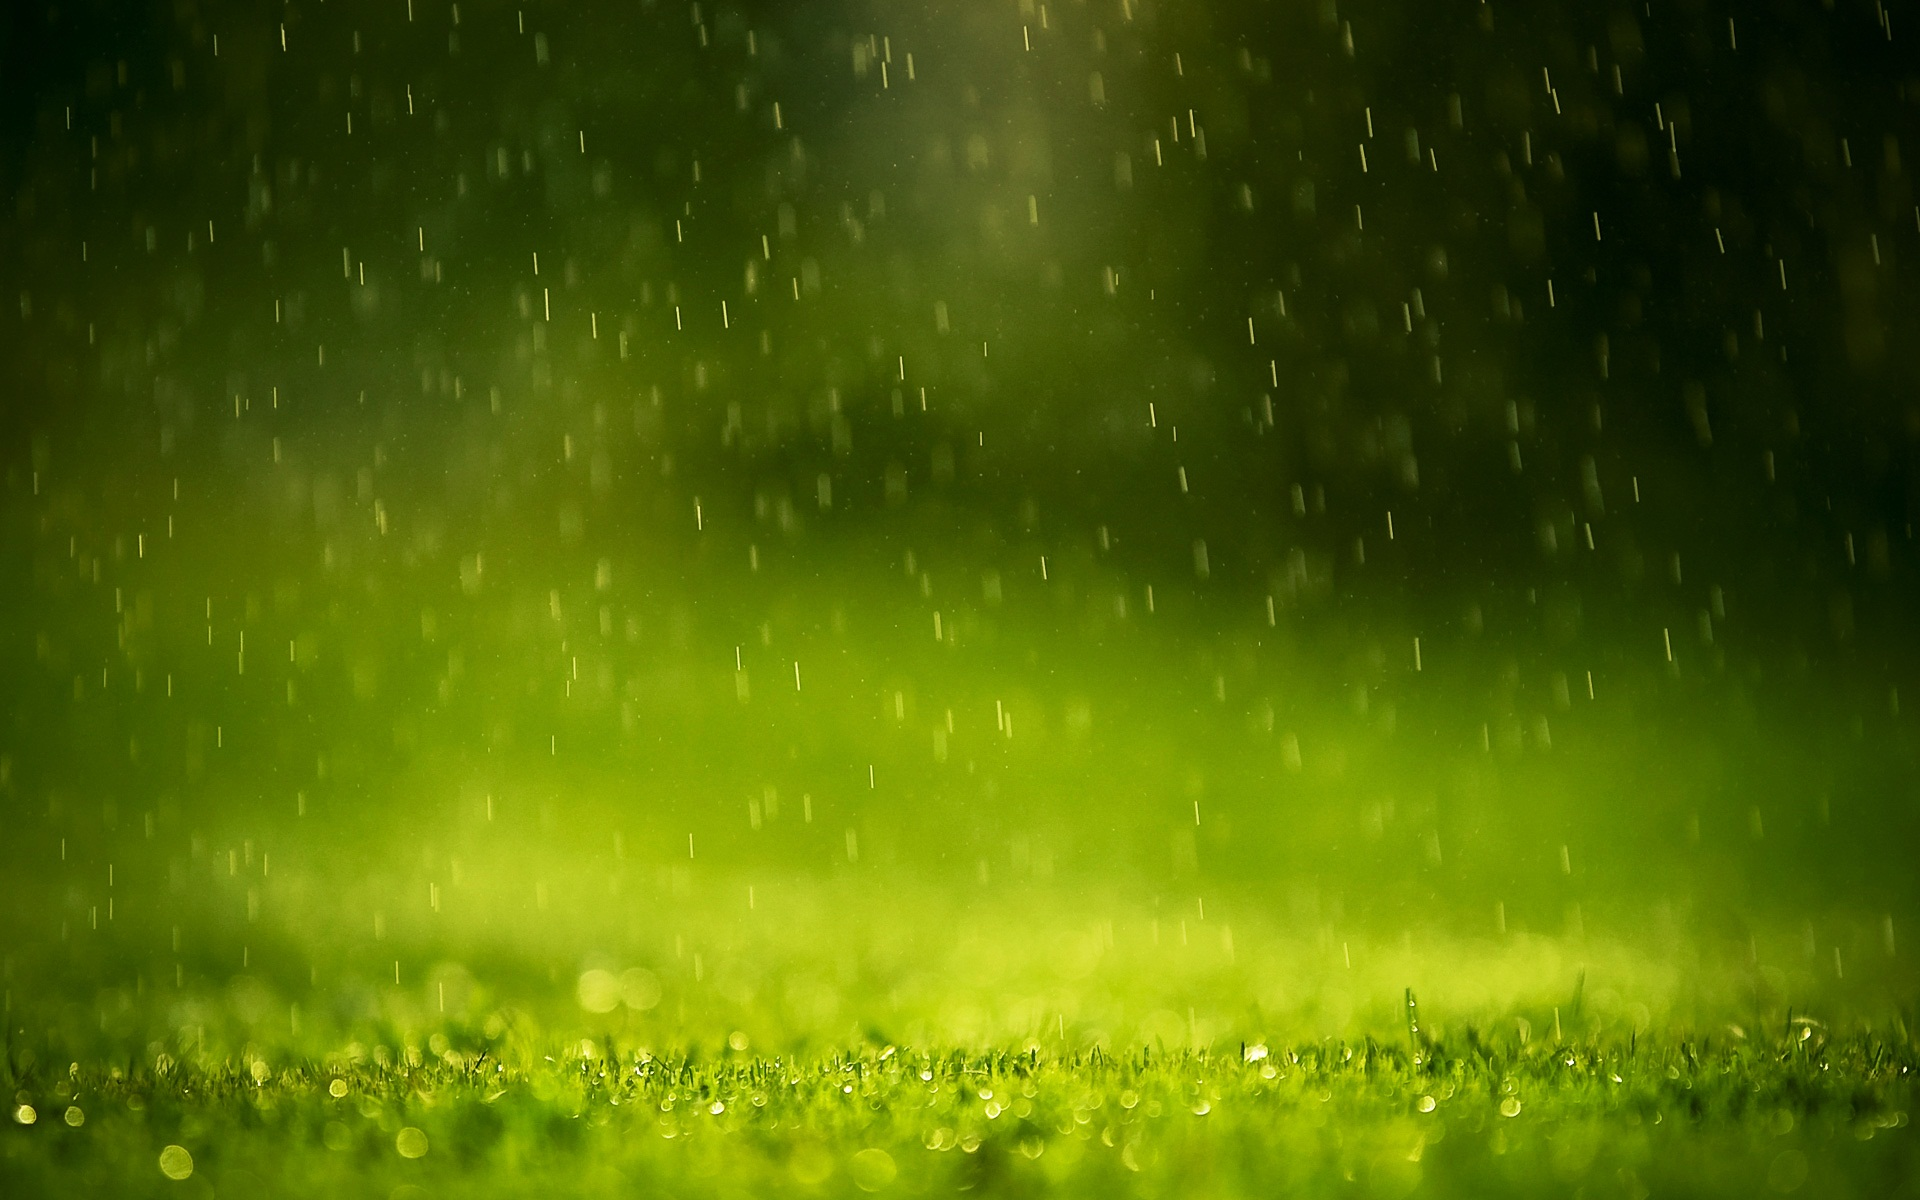 Wonderful Raindrops HD Wallpapers for inspiration  Digital 1920x1200